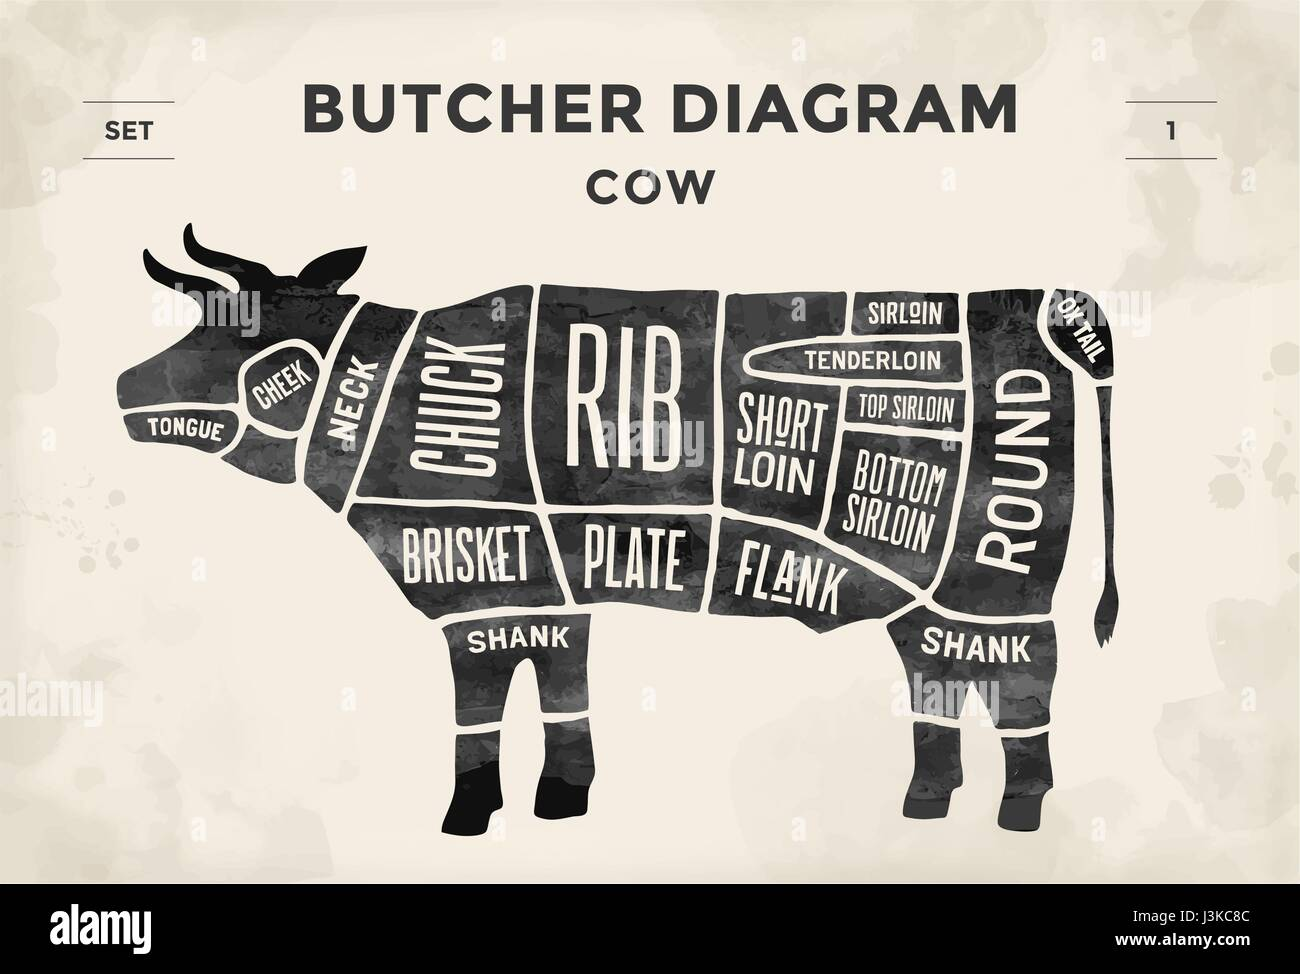 Cut of meat set. Poster Butcher diagram and scheme - Cow. Vintage typographic hand-drawn. Vector illustration. - Stock Image